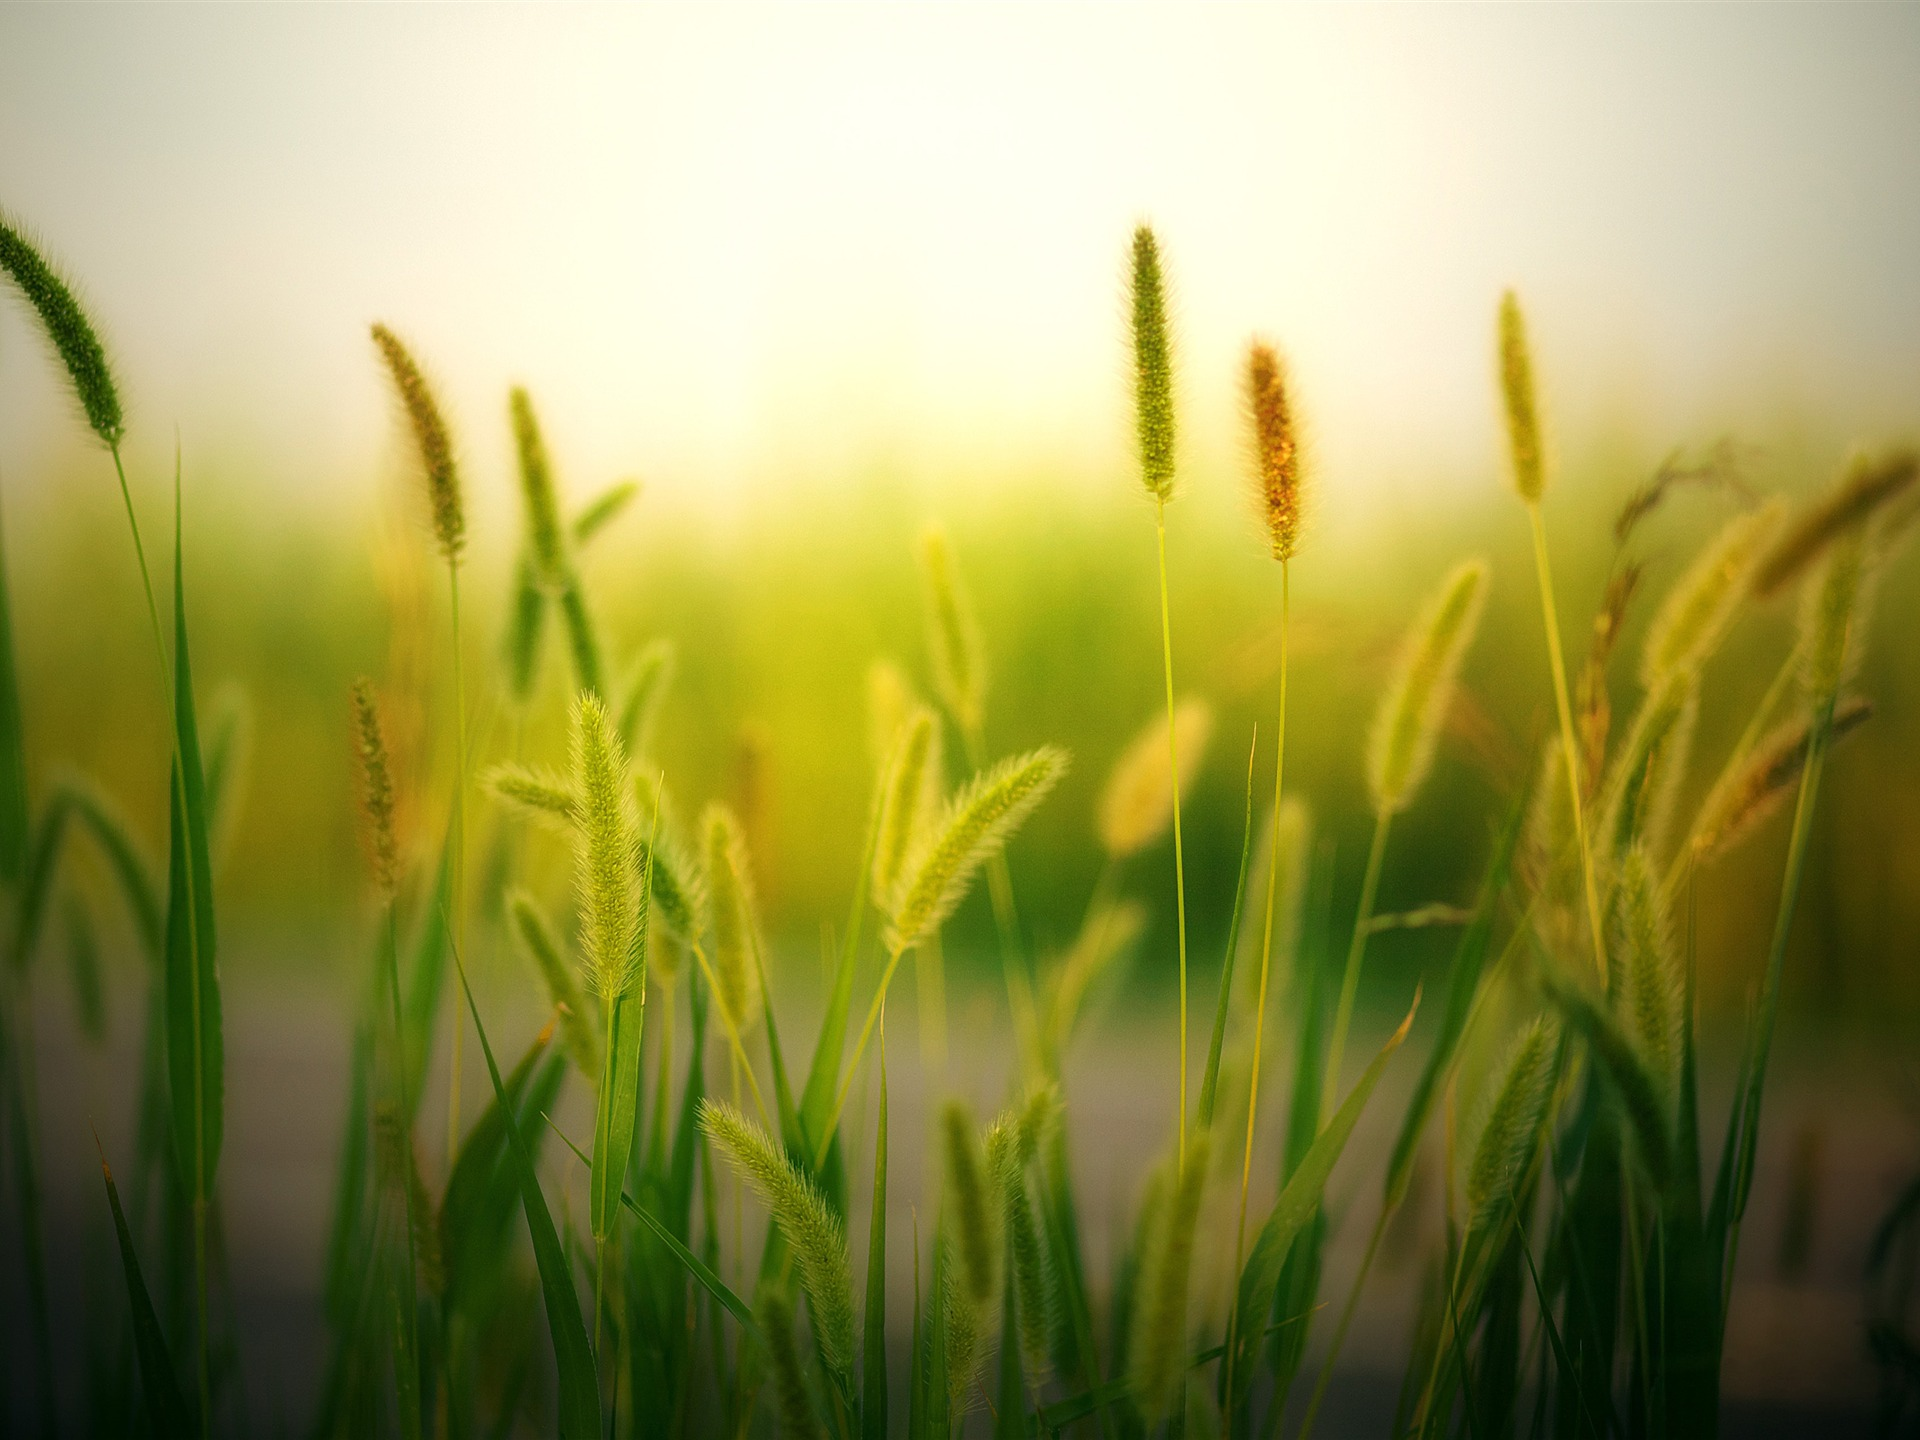 Setaria blur countryside cropland sunshine - 1920x1440 wallpaper download